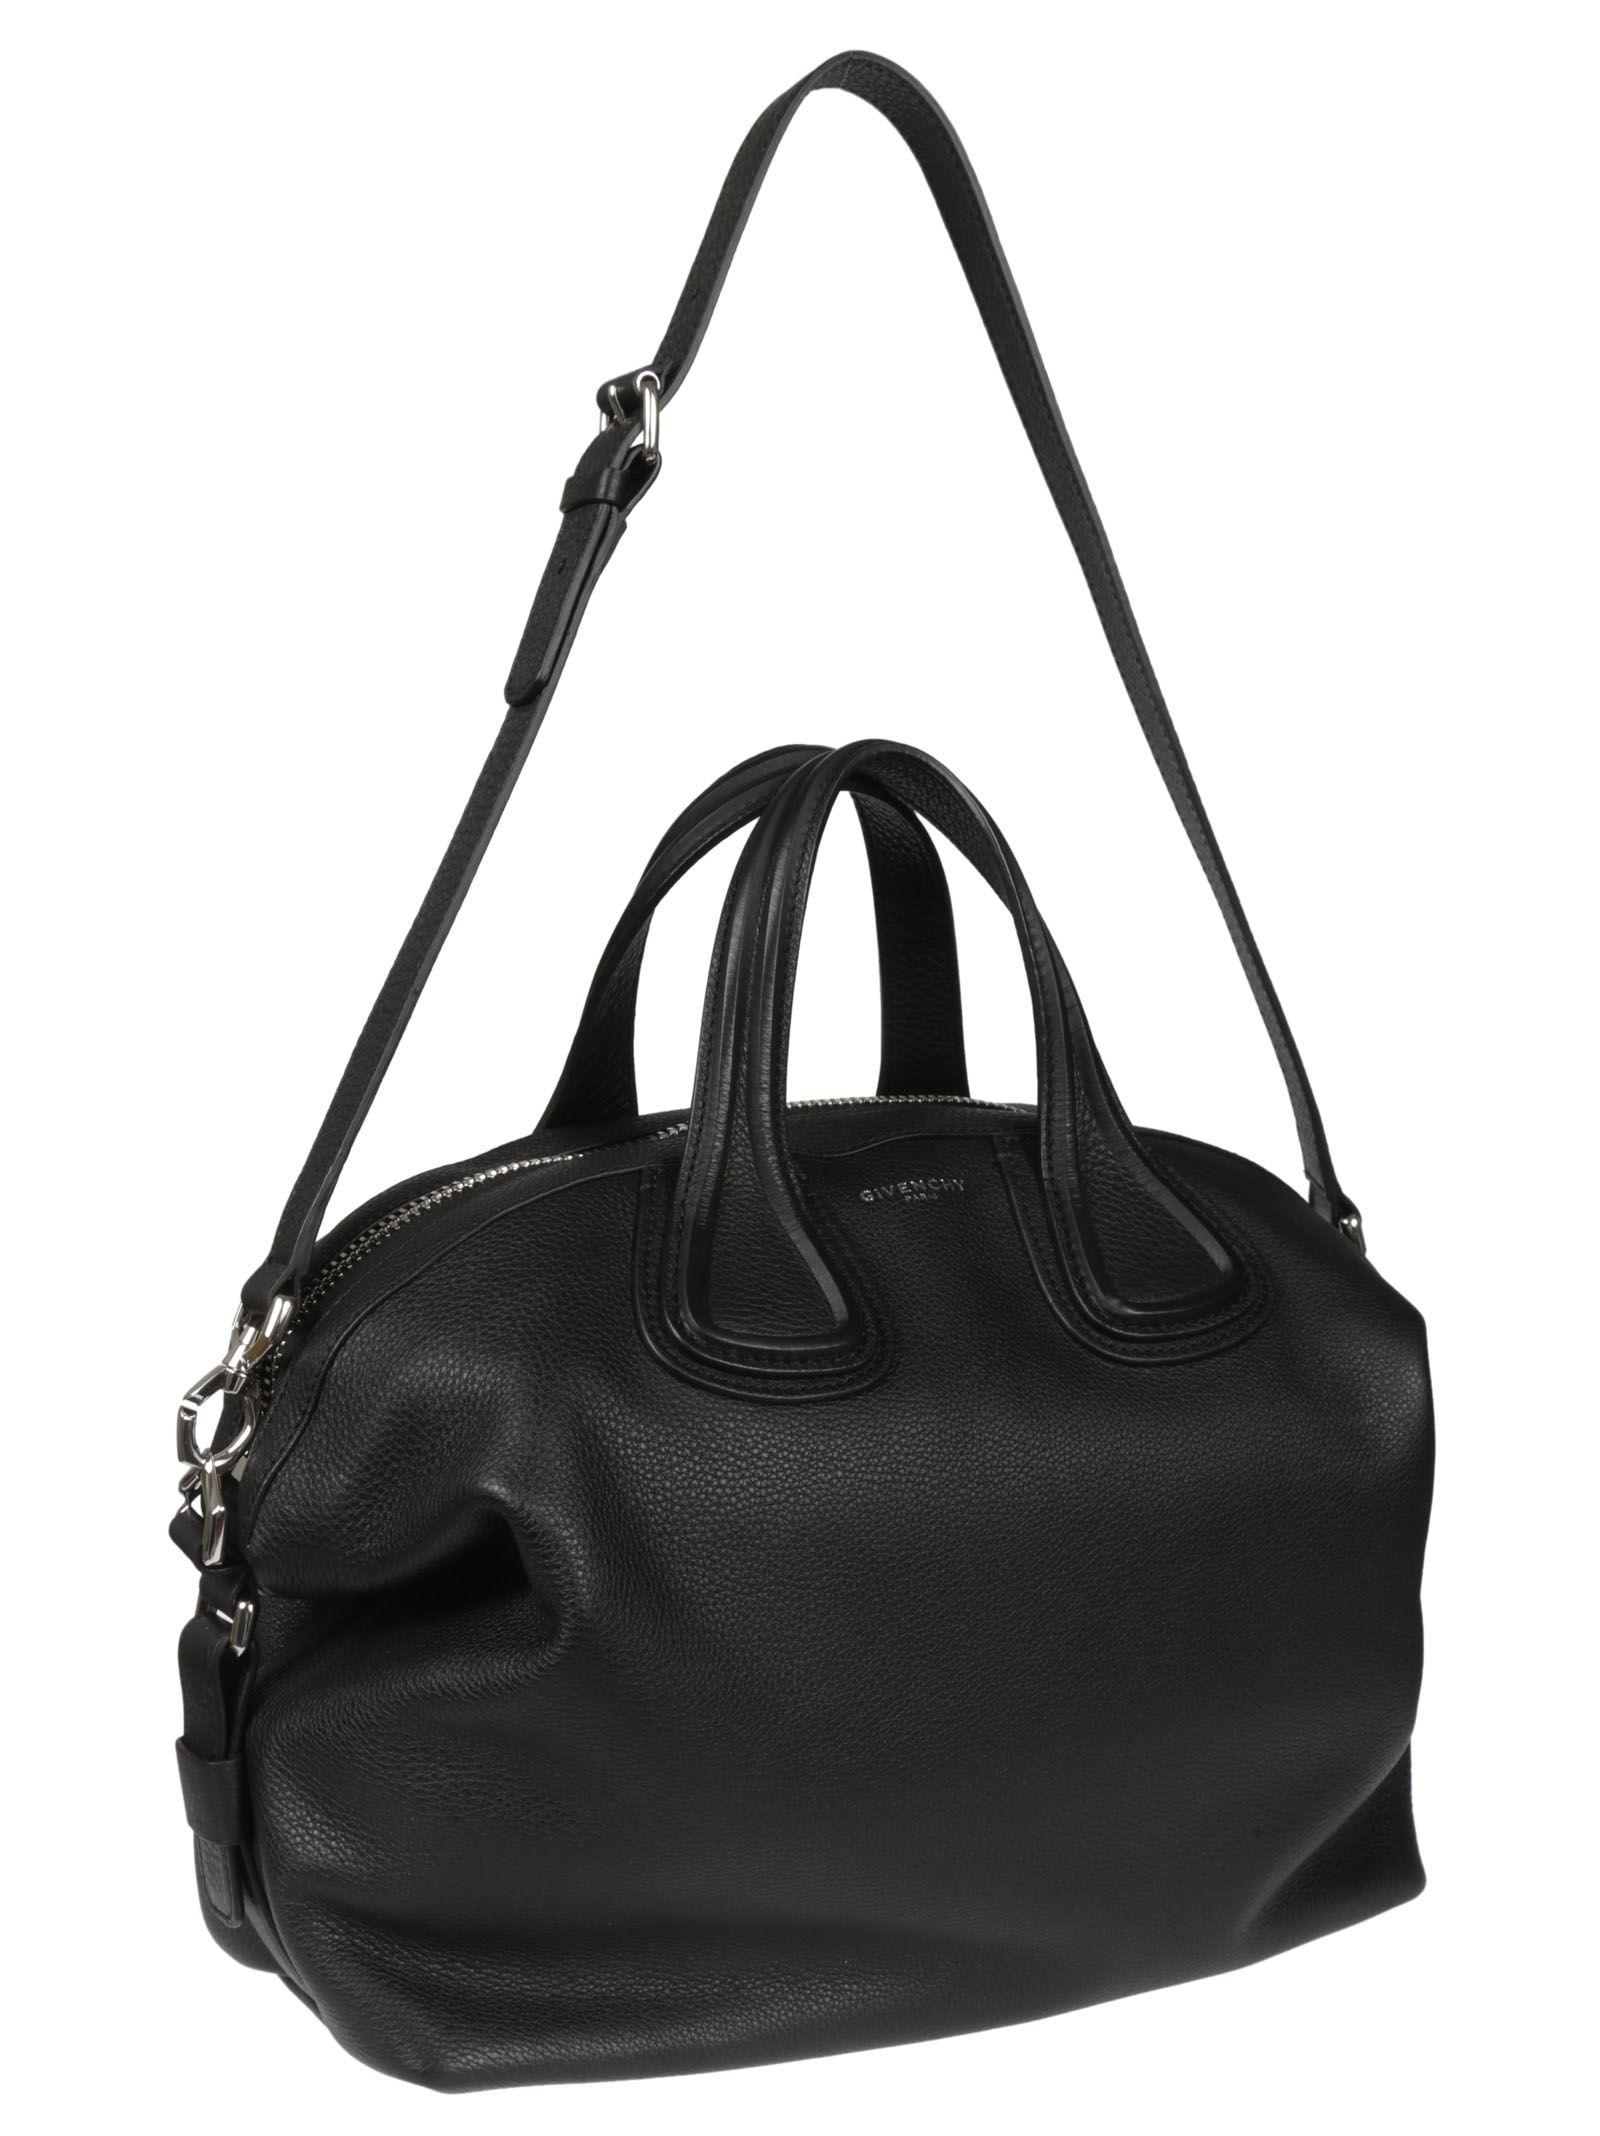 28123307bc520 Givenchy Small Nightingale Tote In Black | ModeSens